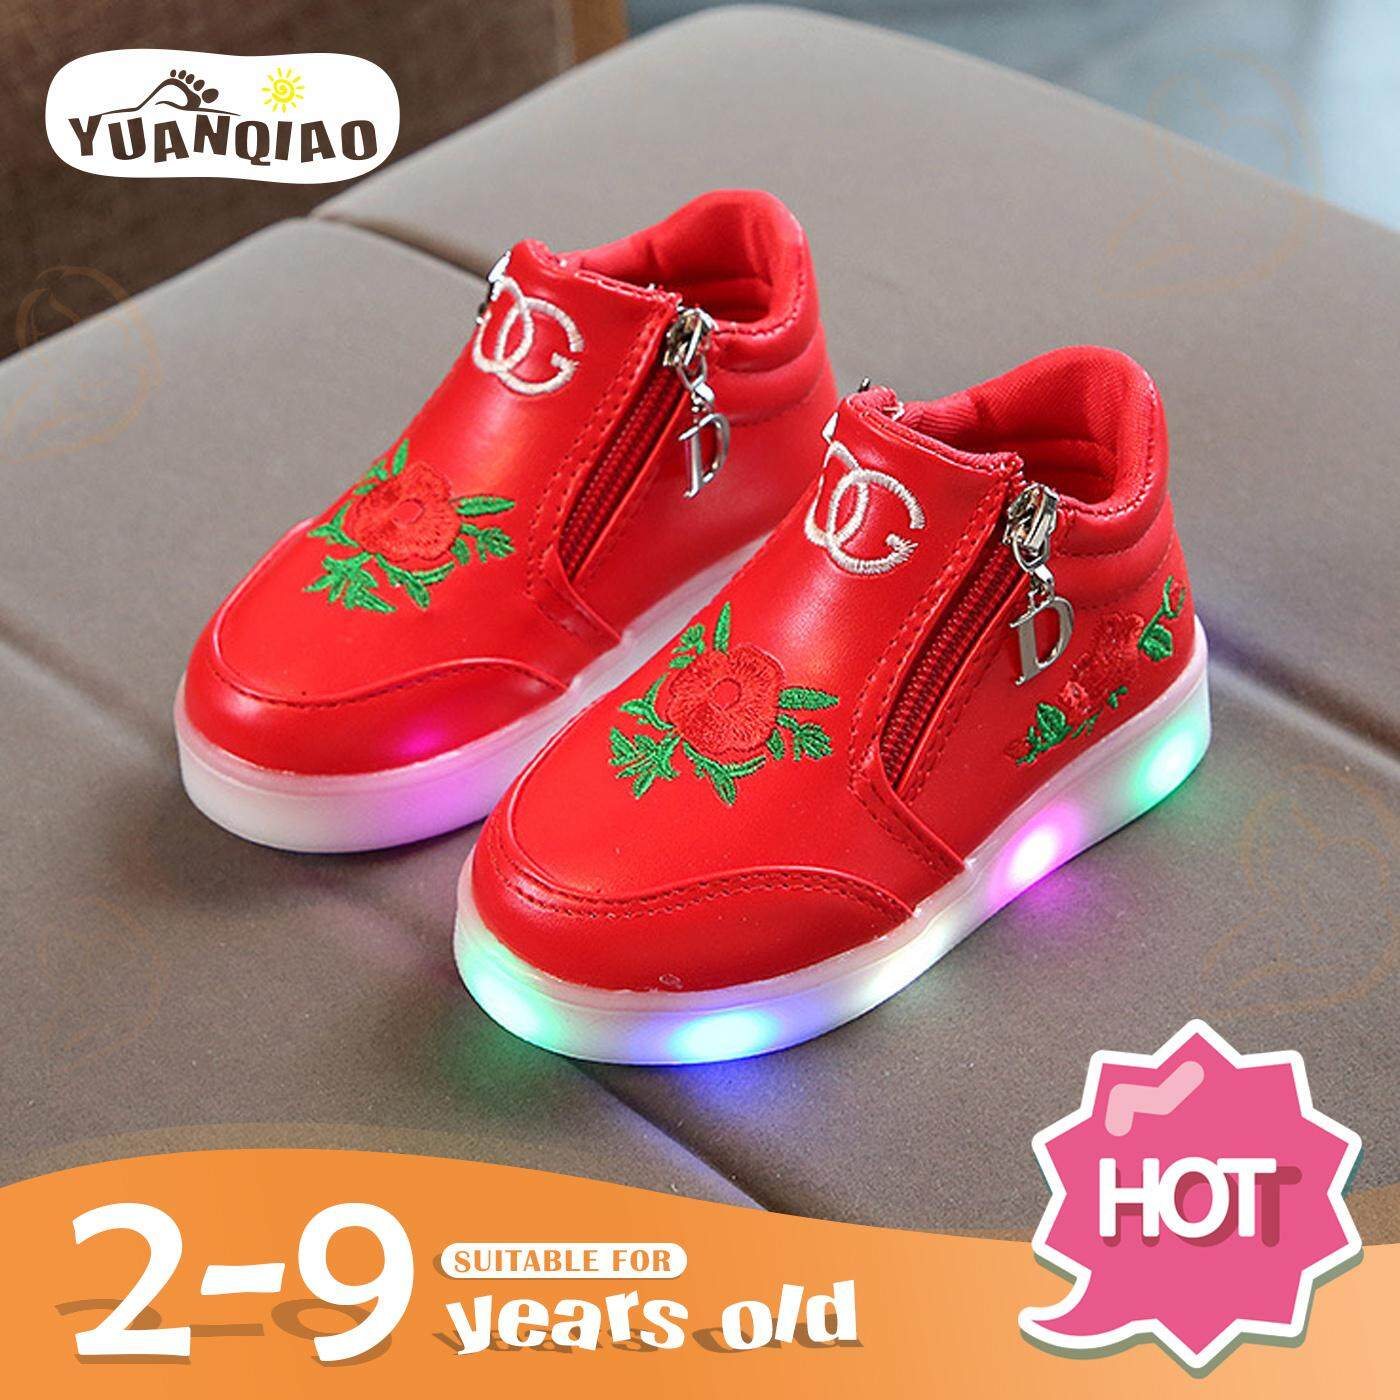 eb5a37dfbaa YUANQIAO Children Shoes Girls Led Light Shoes Embroidered Cartoon Led  Luminous Soft Bottom Kids Shoes 2 3 4 5 6 7 8 9 10 Years Old